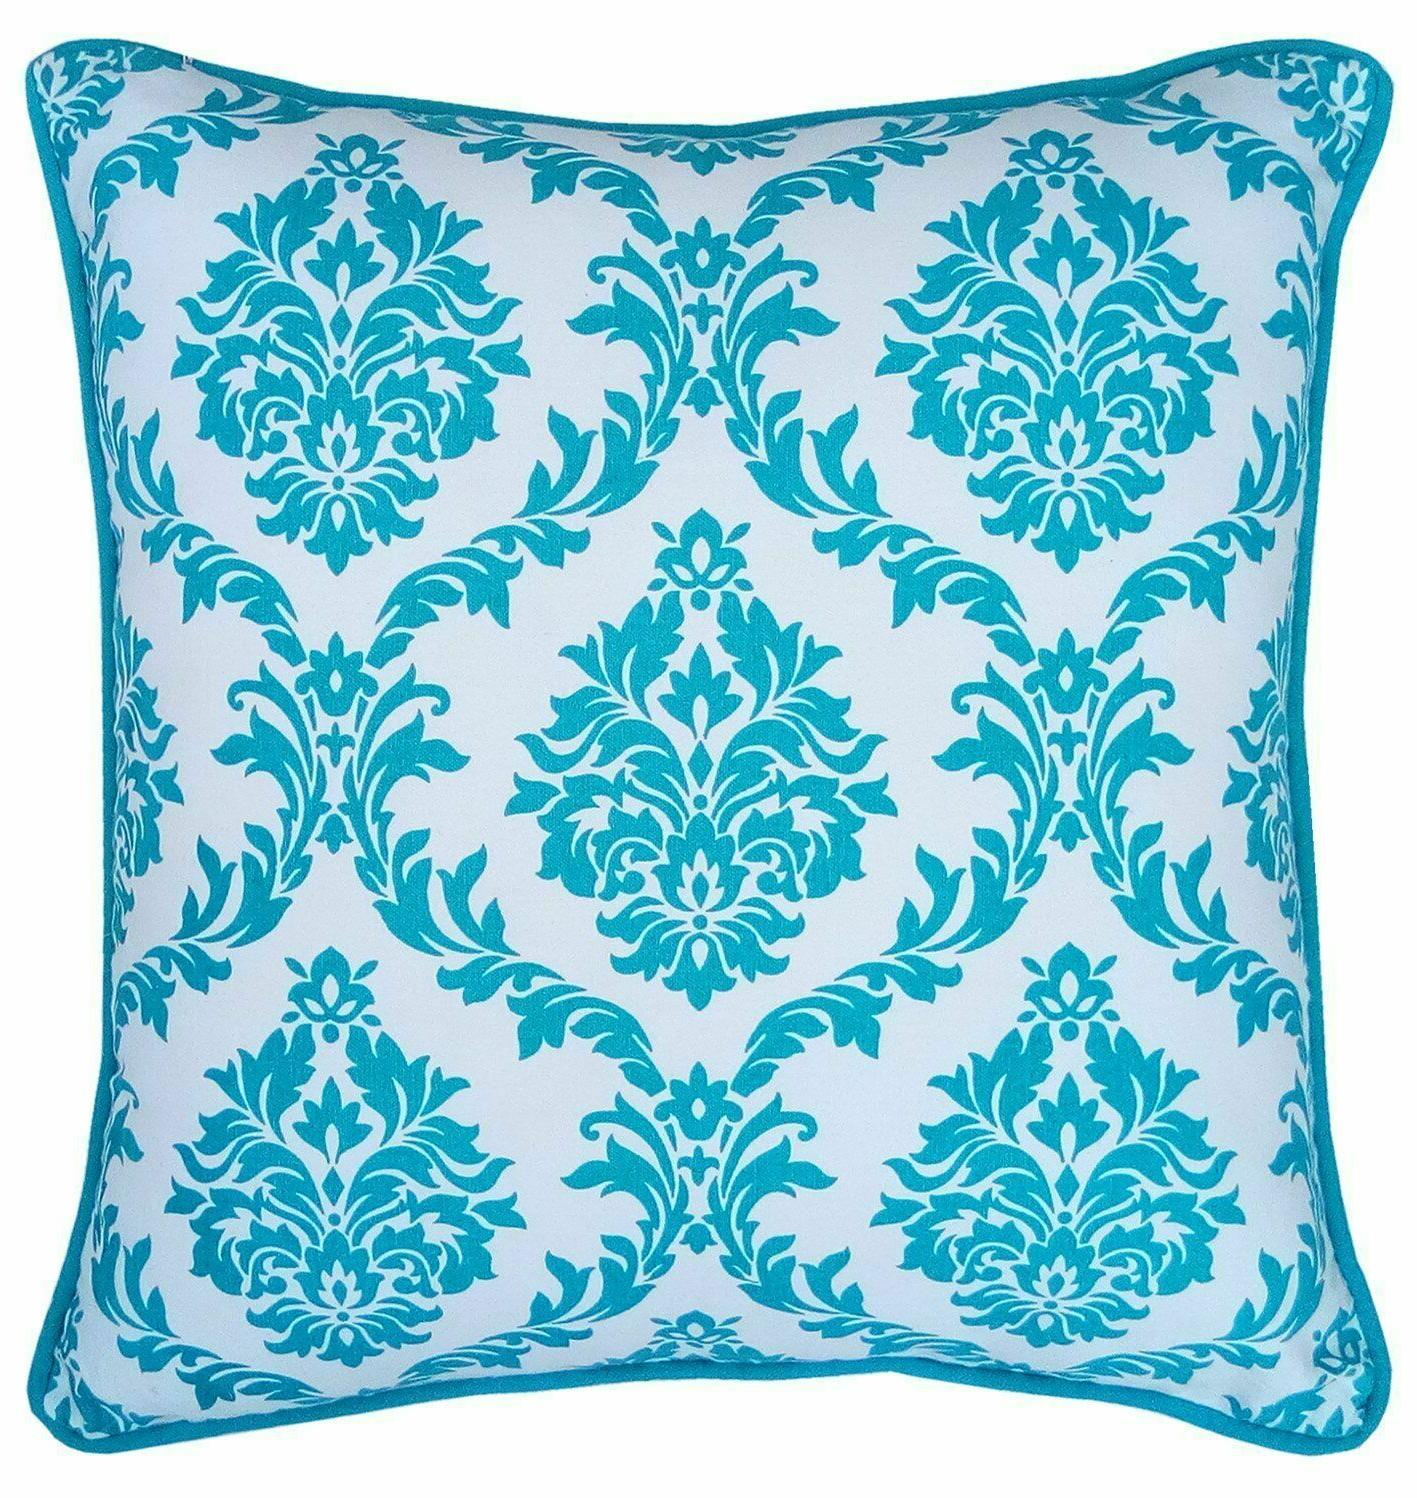 Decorative Cushion Cover 18 18 Inches Set 2